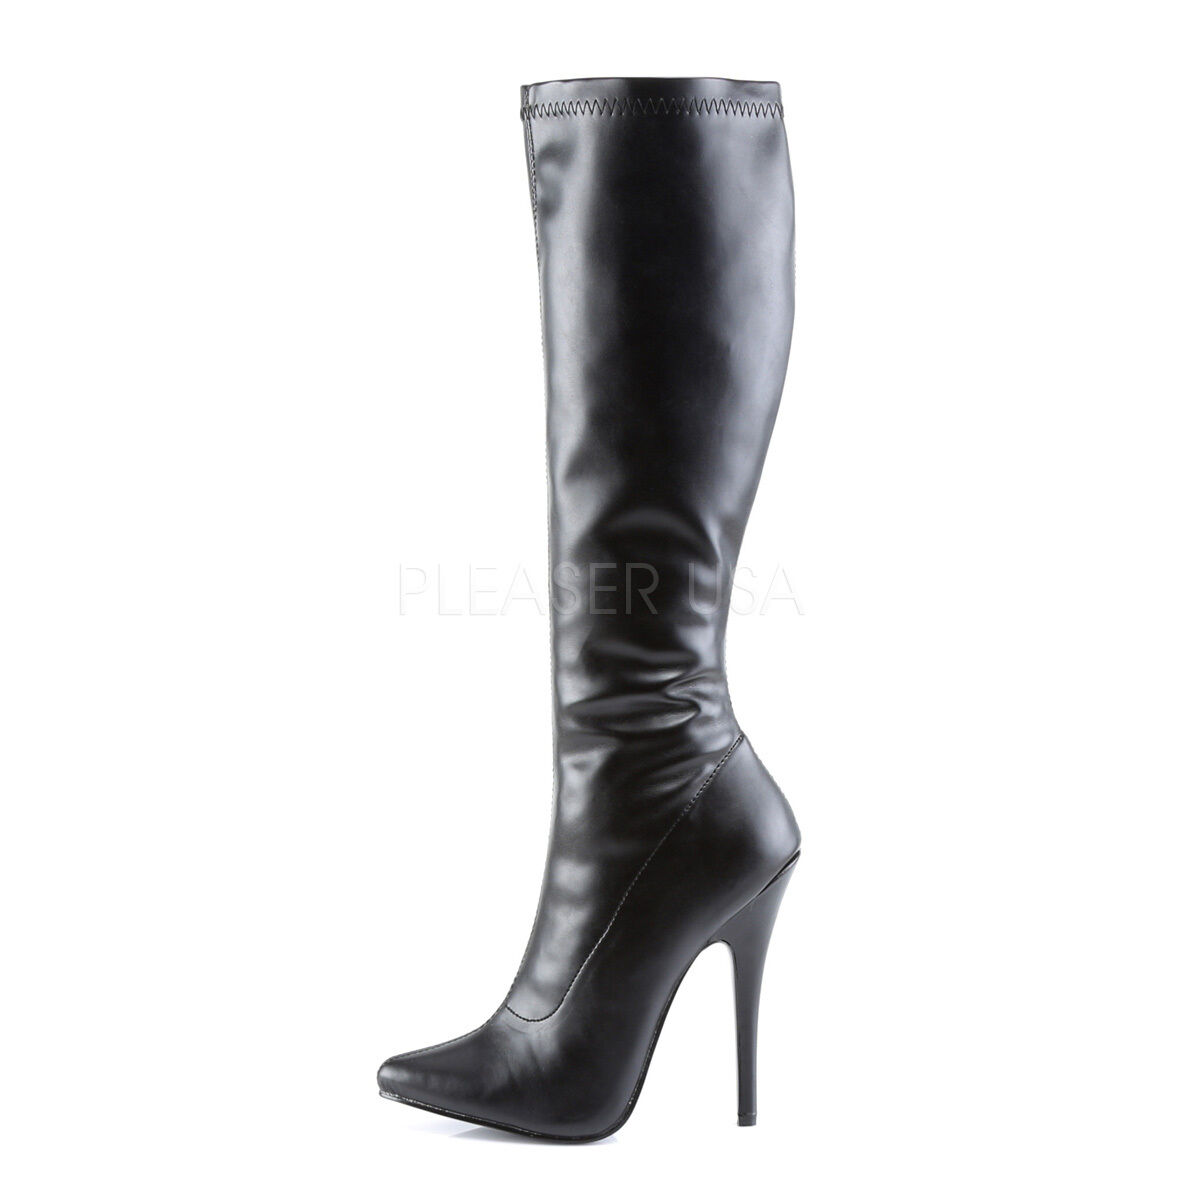 Pleaser Devious domina - 2000 Noir Stretch Aiguille Talon Aiguille Stretch Genou-Bottes hautes f85581